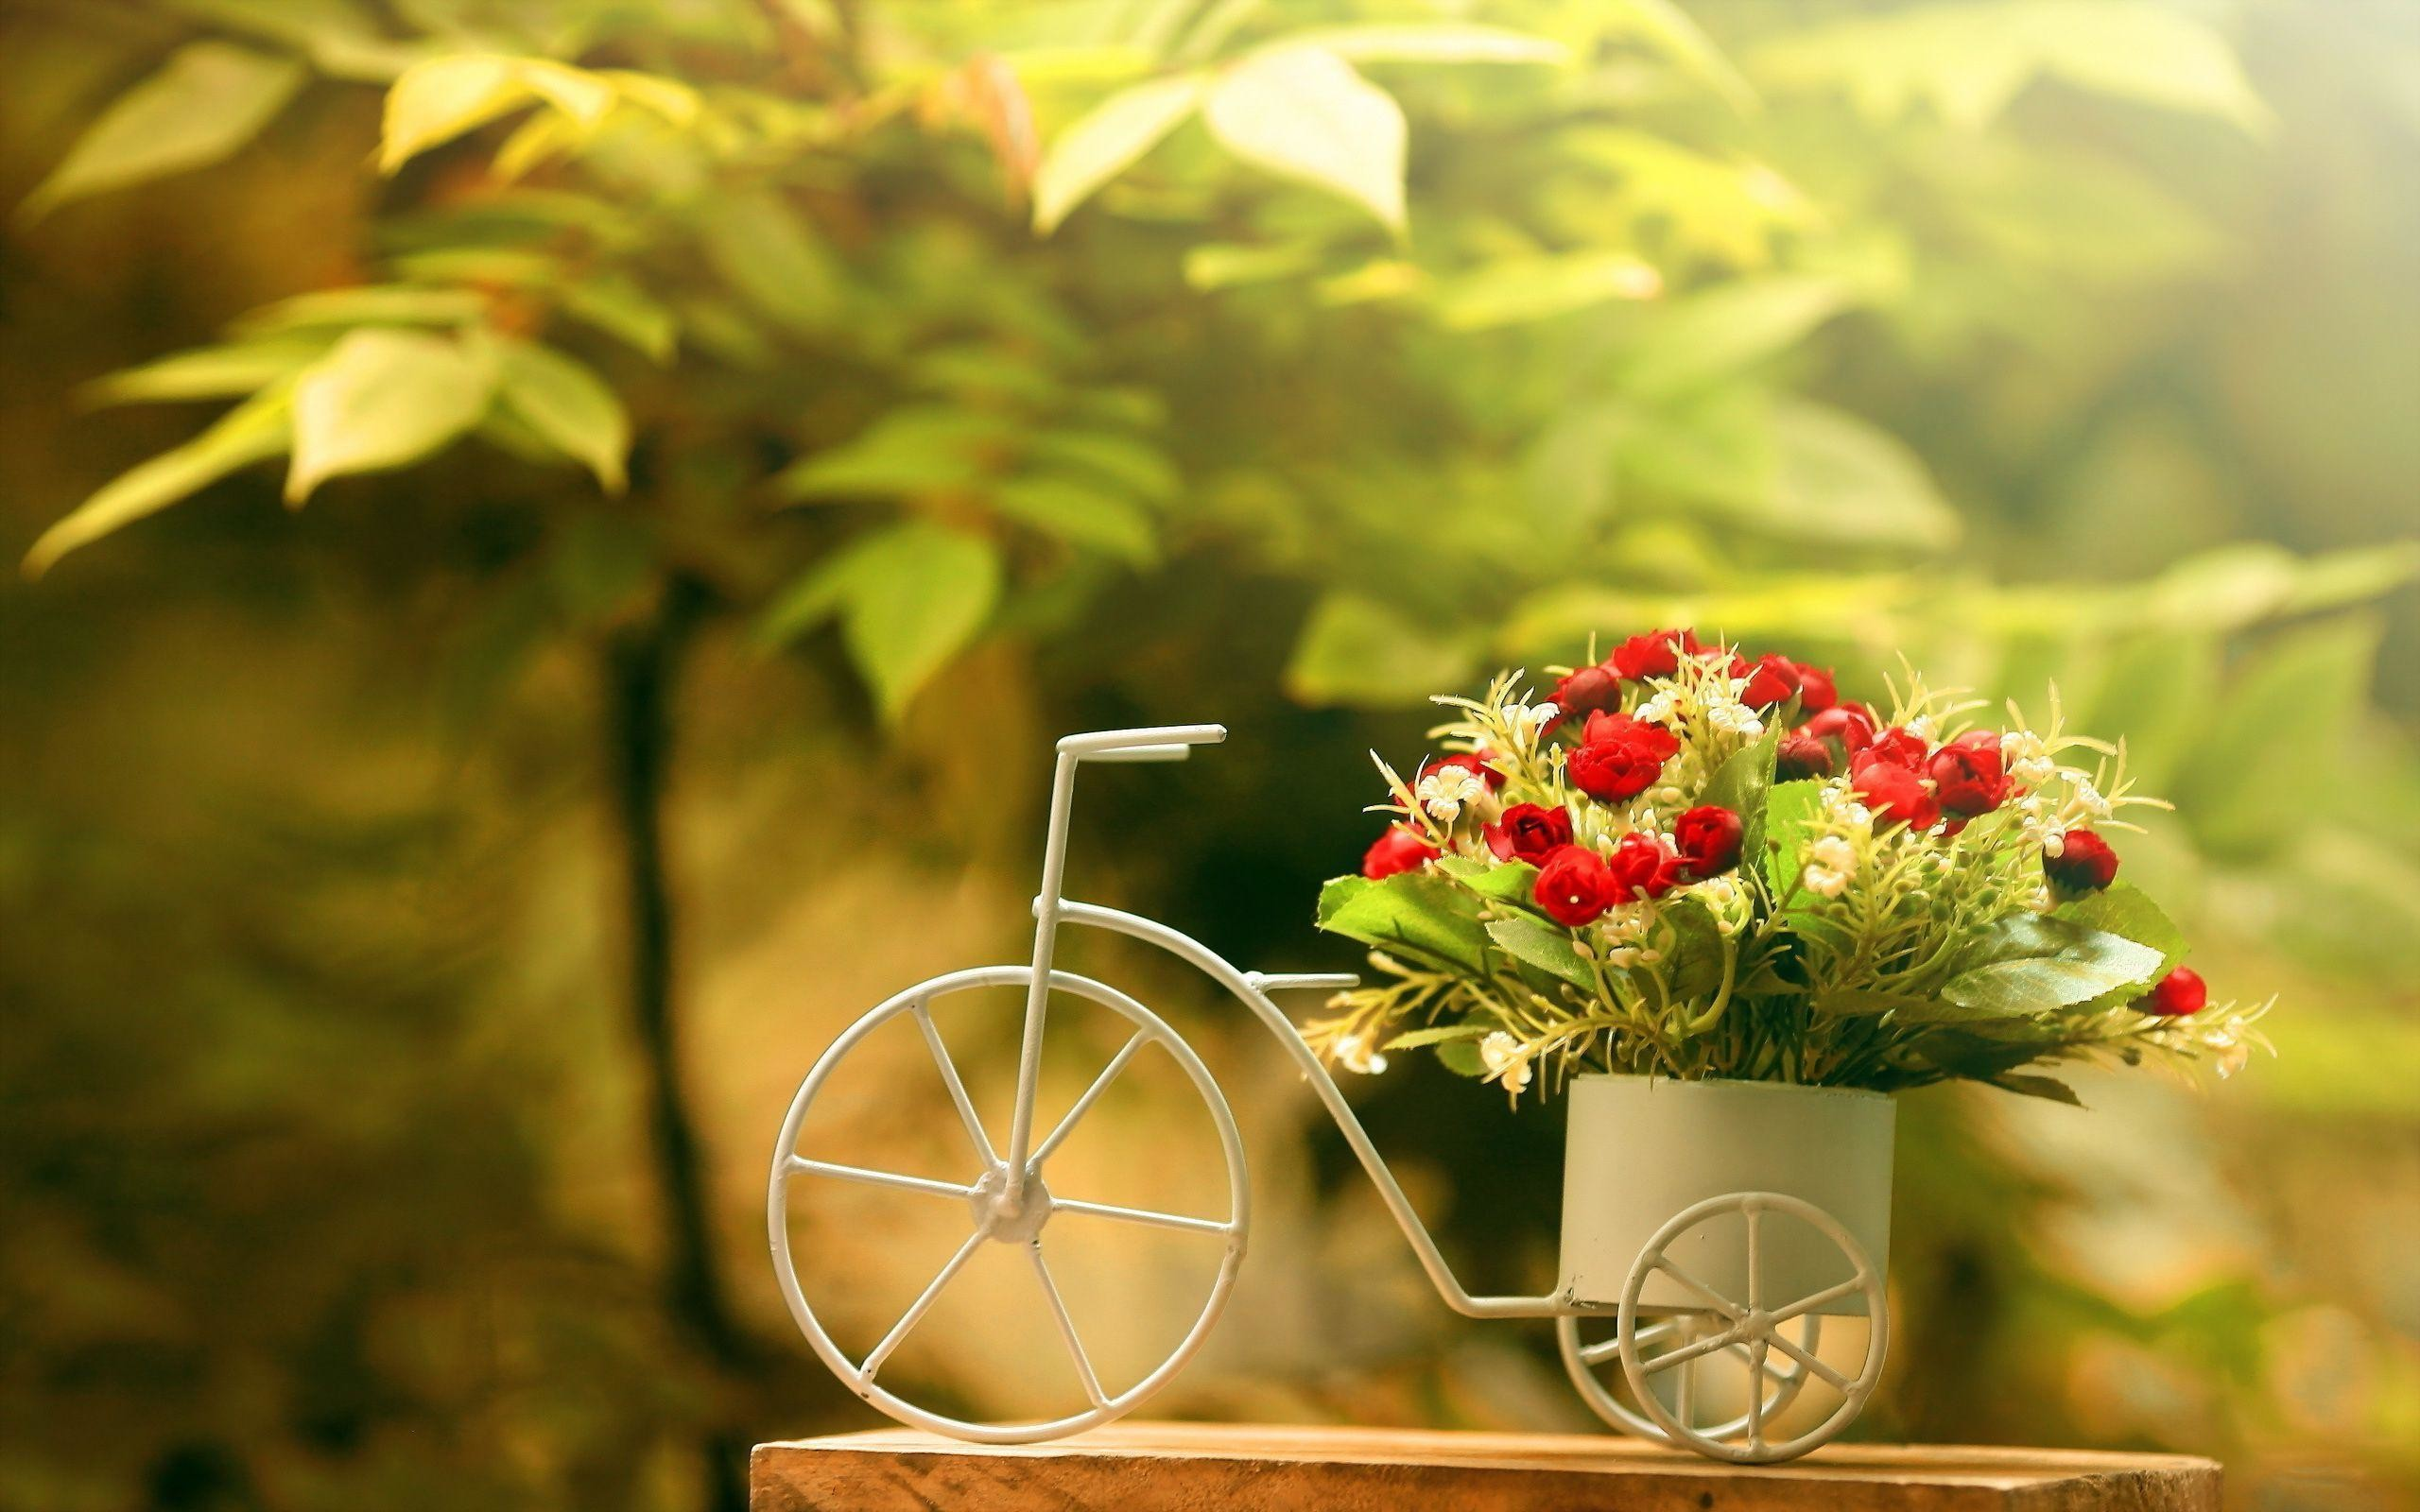 Full Hd Flowers Wallpapers 68 Pictures